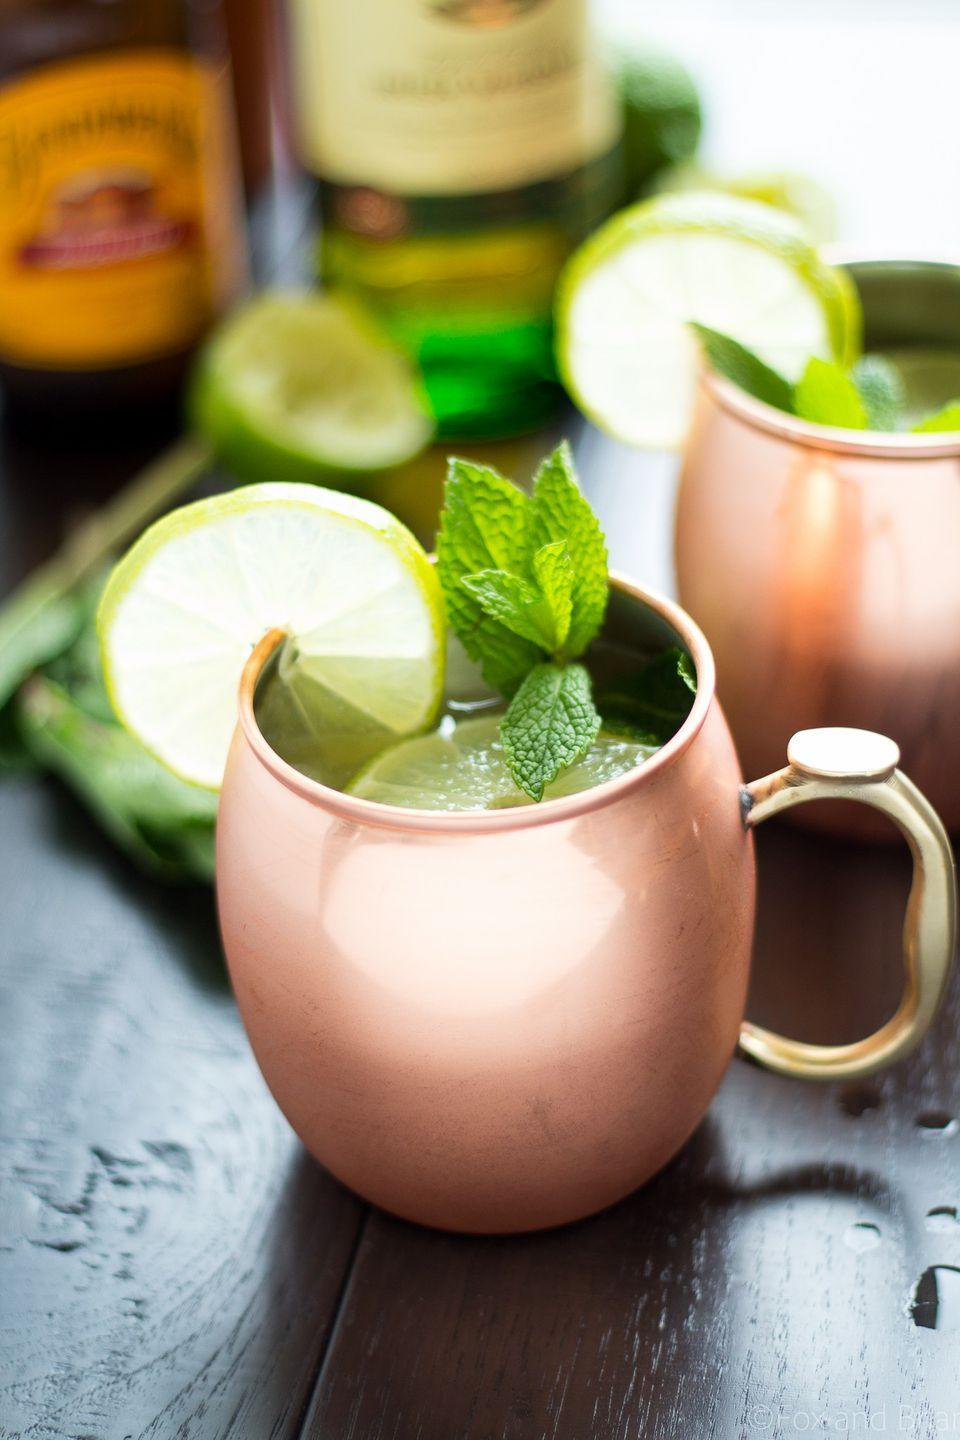 """<p>It's time to switch it up from Moscow.</p><p>Get the recipe from <a href=""""http://www.foxandbriar.com/the-irish-mule/"""" rel=""""nofollow noopener"""" target=""""_blank"""" data-ylk=""""slk:Fox and Briar"""" class=""""link rapid-noclick-resp"""">Fox and Briar</a>.</p>"""